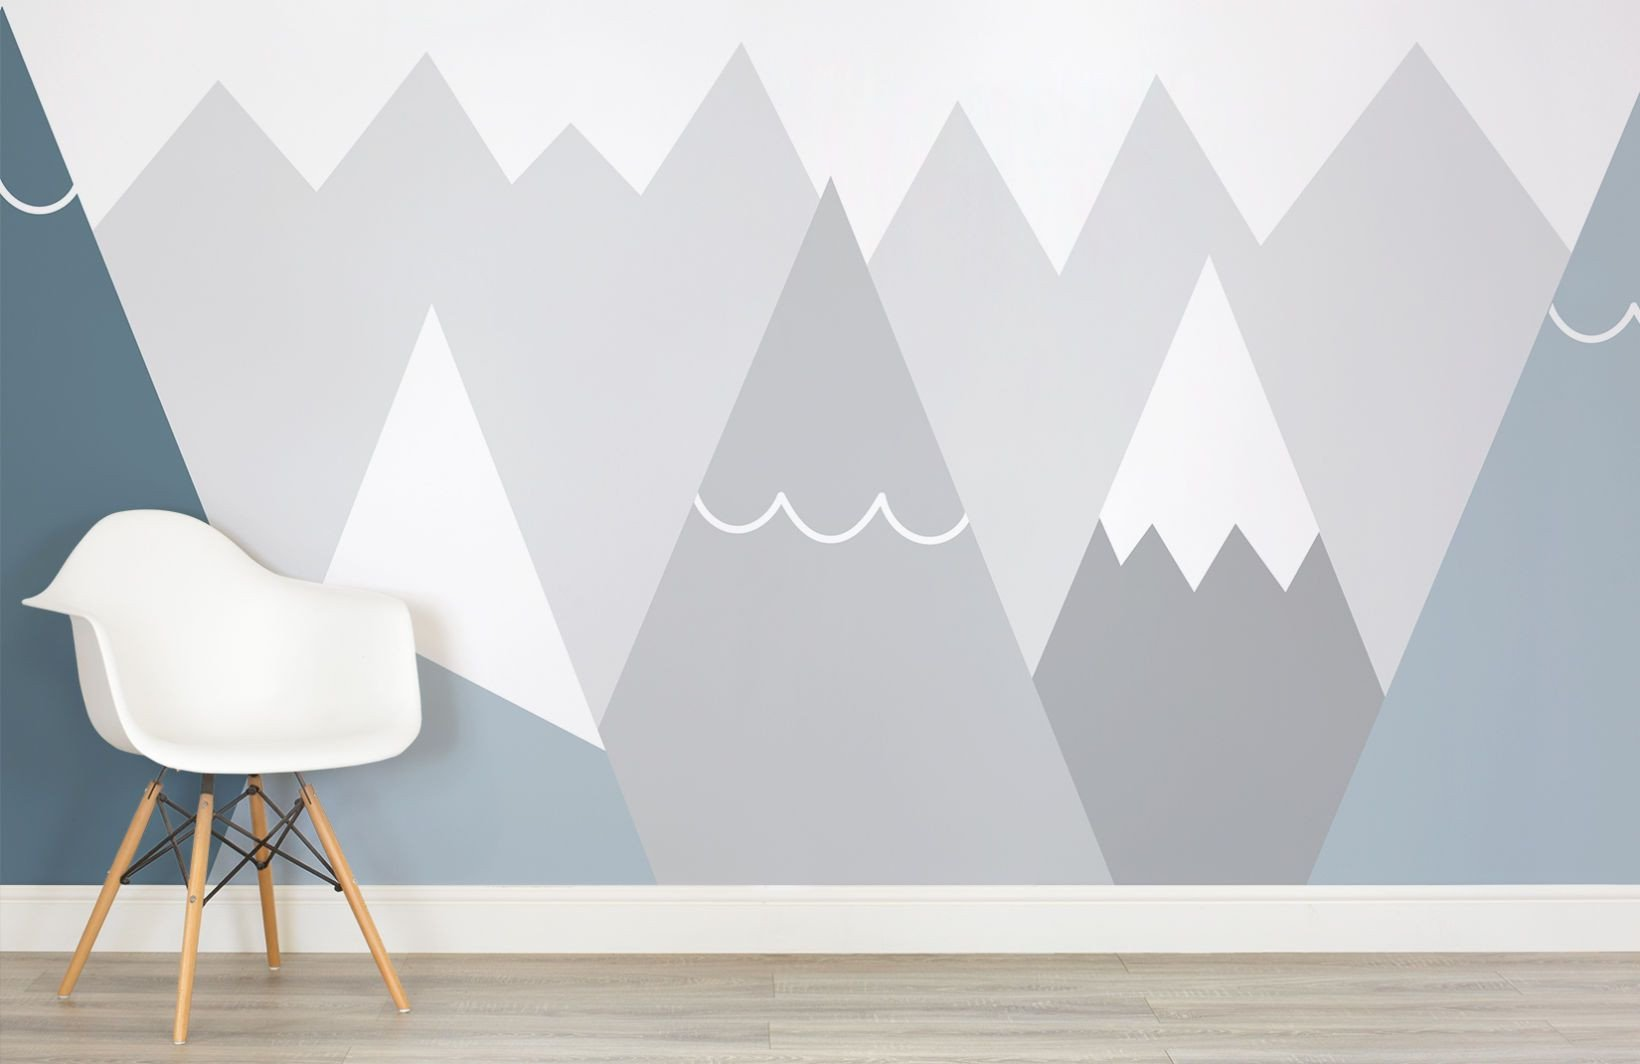 Wall Mural Ideas for Bedroom Awesome Kids Blue and Gray Mountains Wall Mural